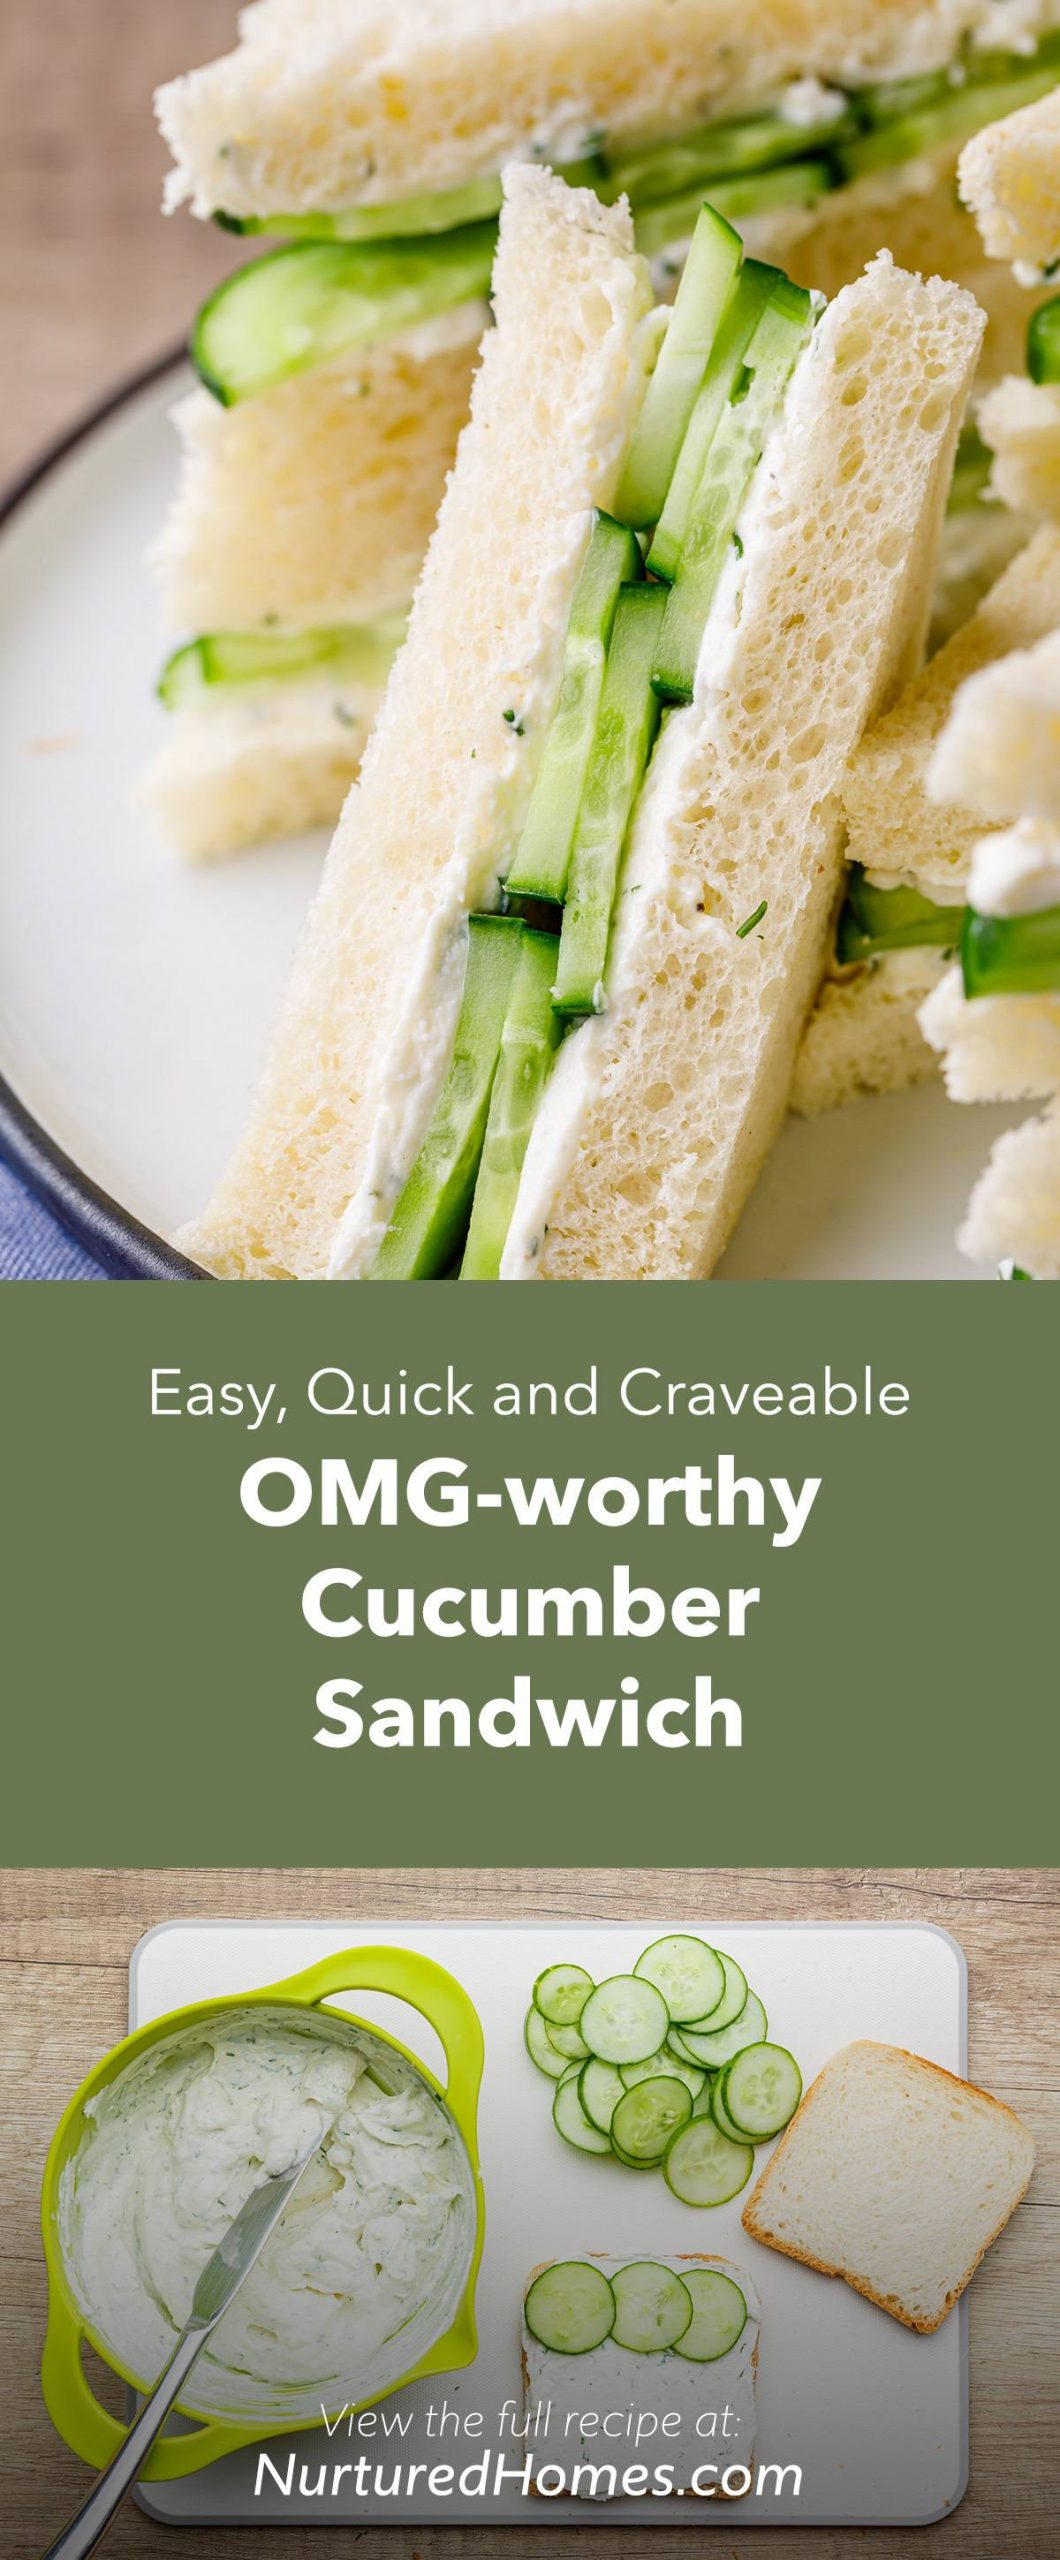 OMG-worthy Cucumber Sandwich Recipe